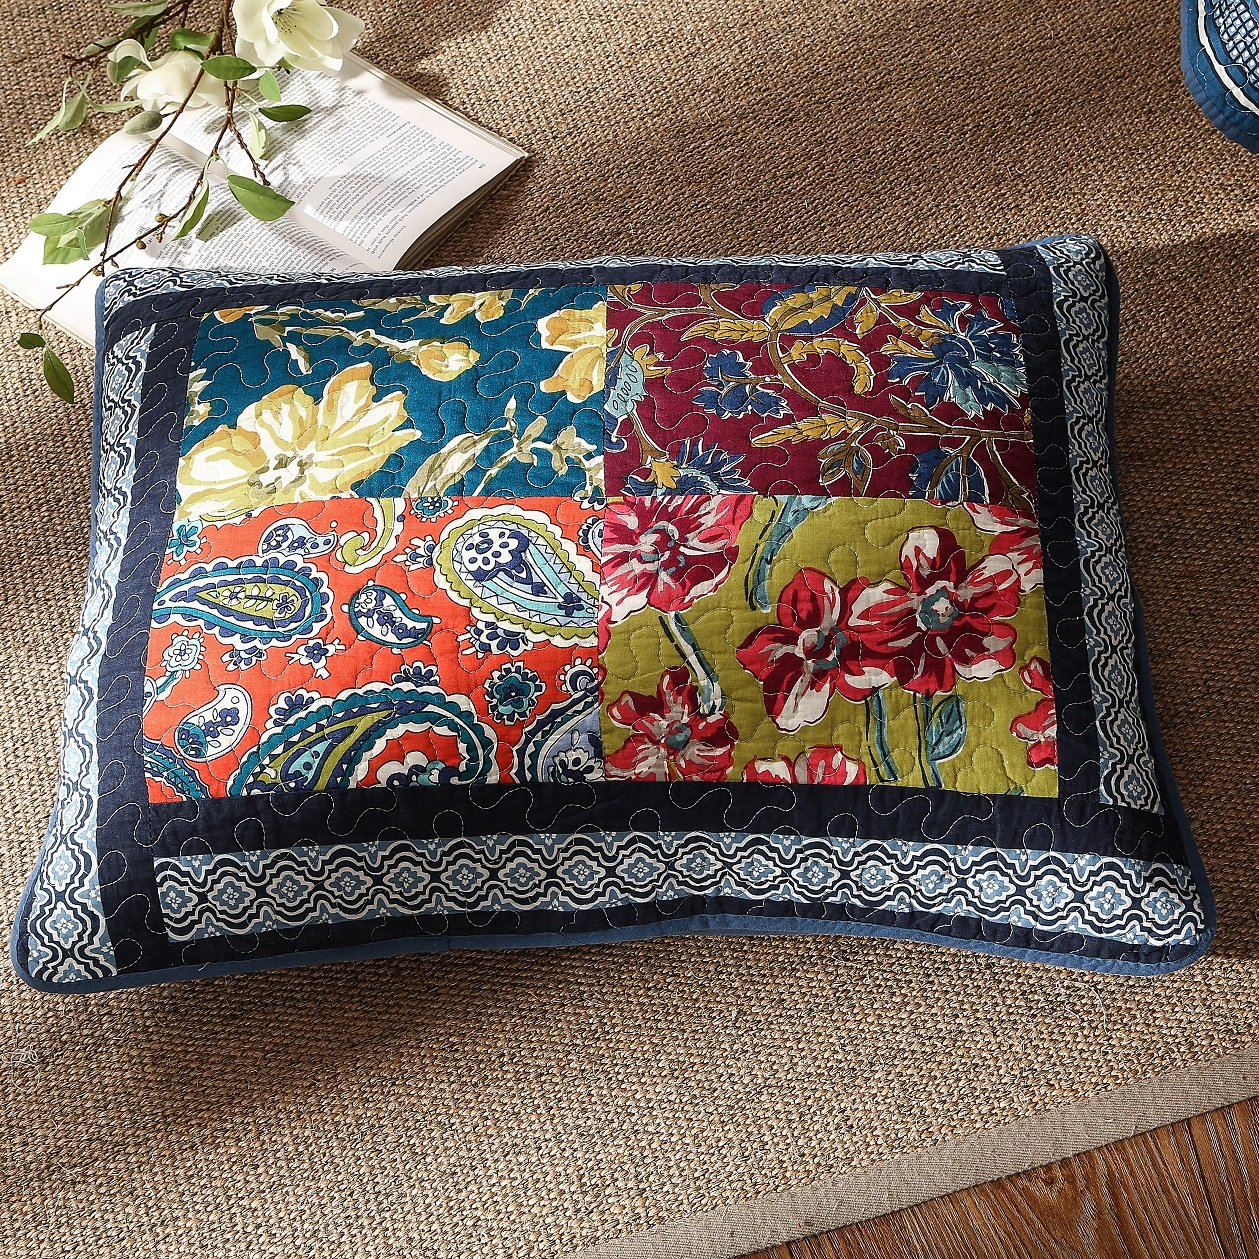 DaDa Bedding Bohemian Midnight Ocean Blue Sea Reversible Real Patchwork Quilted Bedspread Set - Dark Navy Floral Multi-Color Print - Queen - 3-Pieces by DaDa Bedding Collection (Image #7)